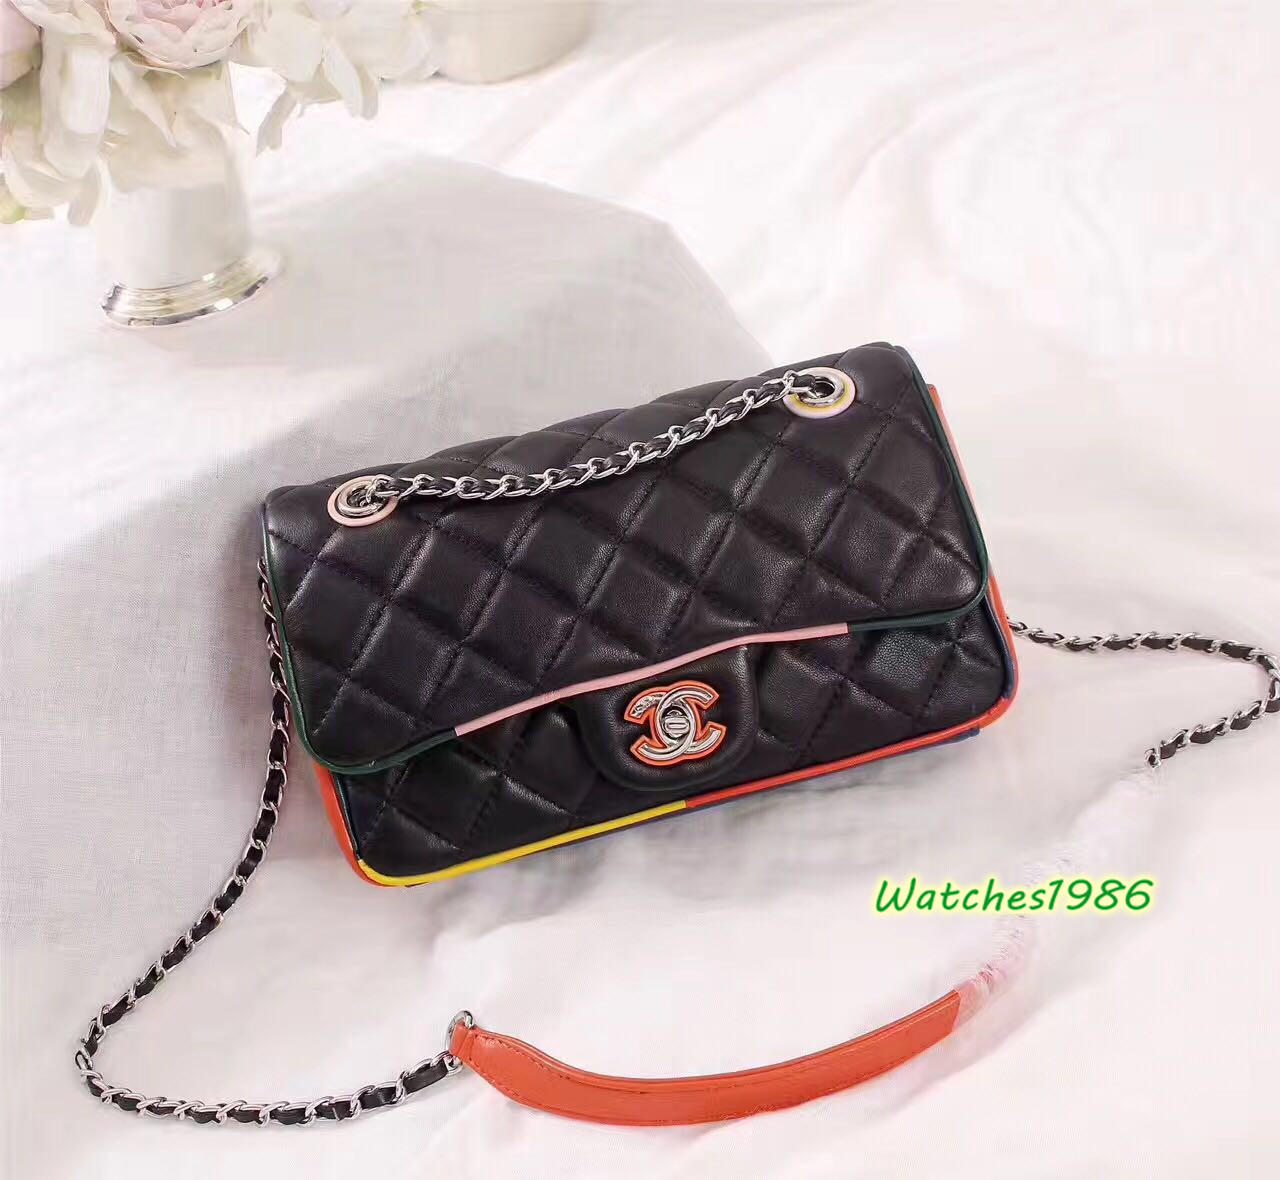 e8045368637a 2017 latest Chanel purse replica handbag online for sale - AAA ...